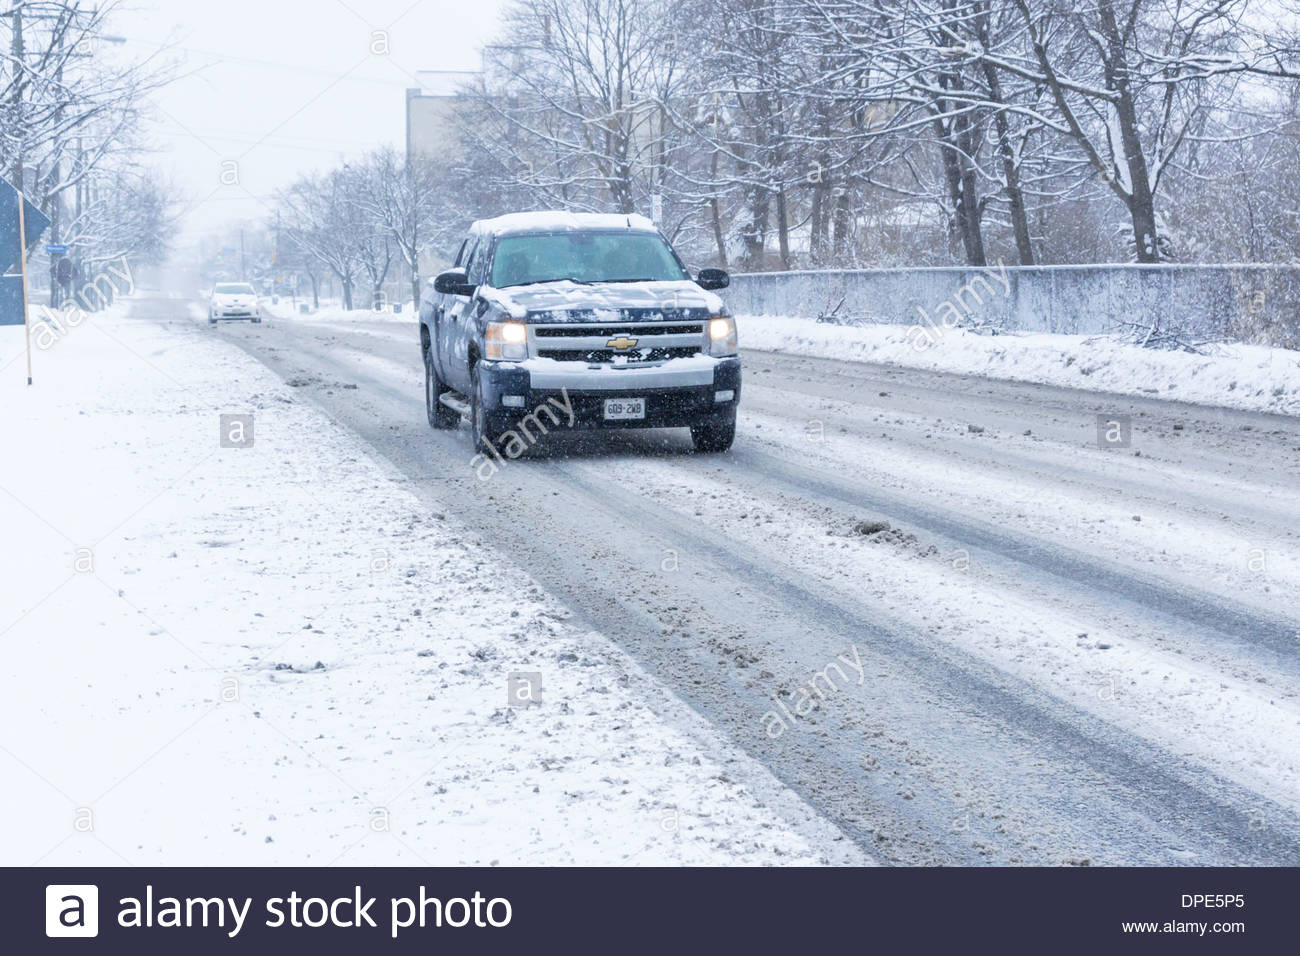 Truck on day so cold that salt ineffective in melting snow creating a slippery slush on road in Toronto Ontario Canada - Stock Image